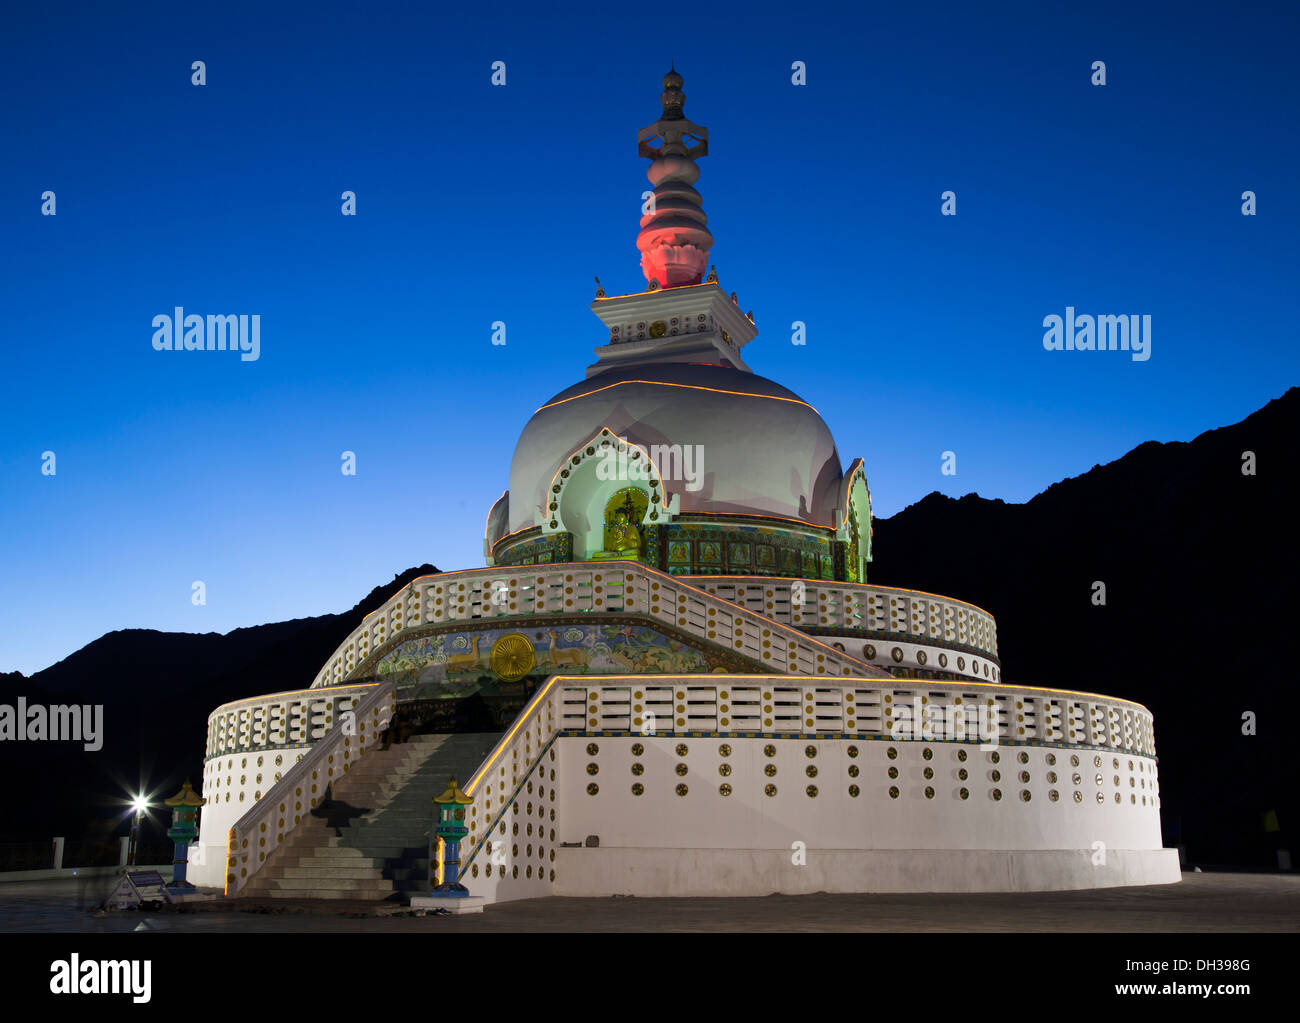 Shanti Stupa a Buddhist white-domed stupa (chorten) on a hilltop in Chanspa, Leh district, Ladakh, built in 1991 Stock Photo